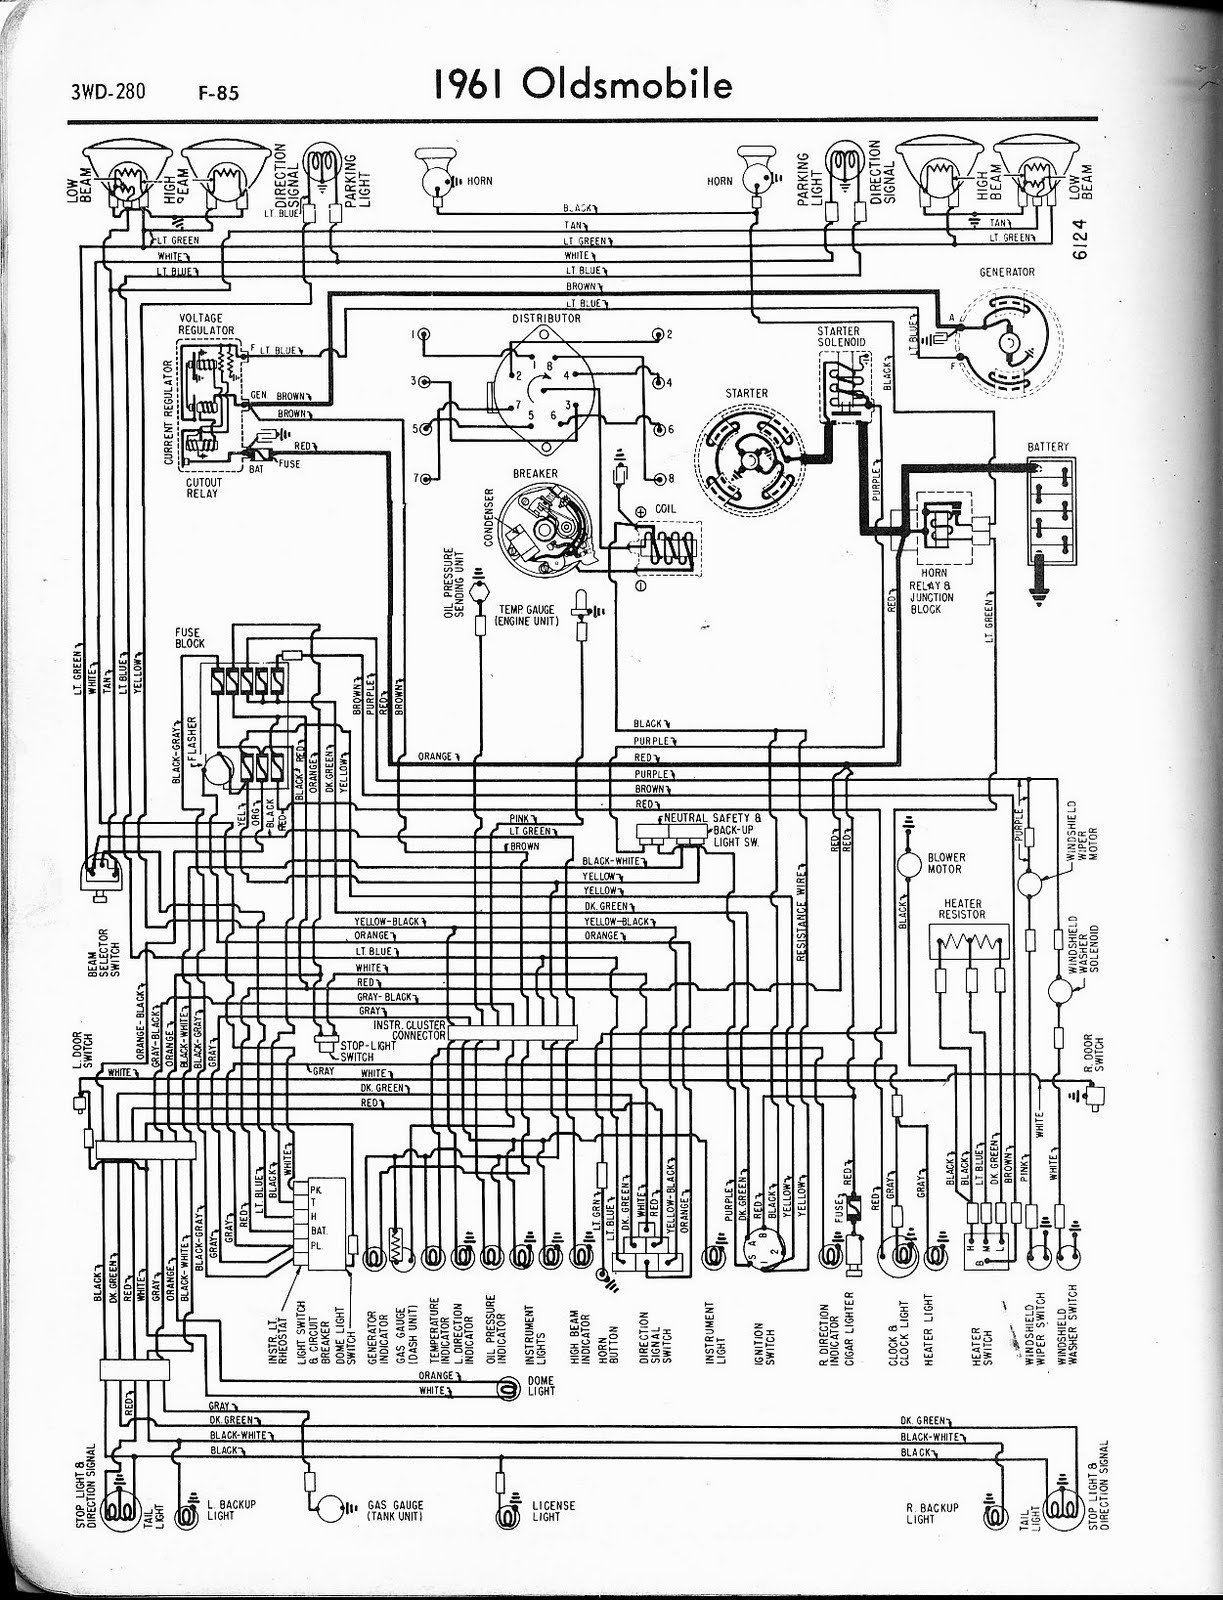 free auto wiring diagram 1981 1987 chevrolet v8 truck auto electrical wiring diagrams free pdf free auto wiring diagram software